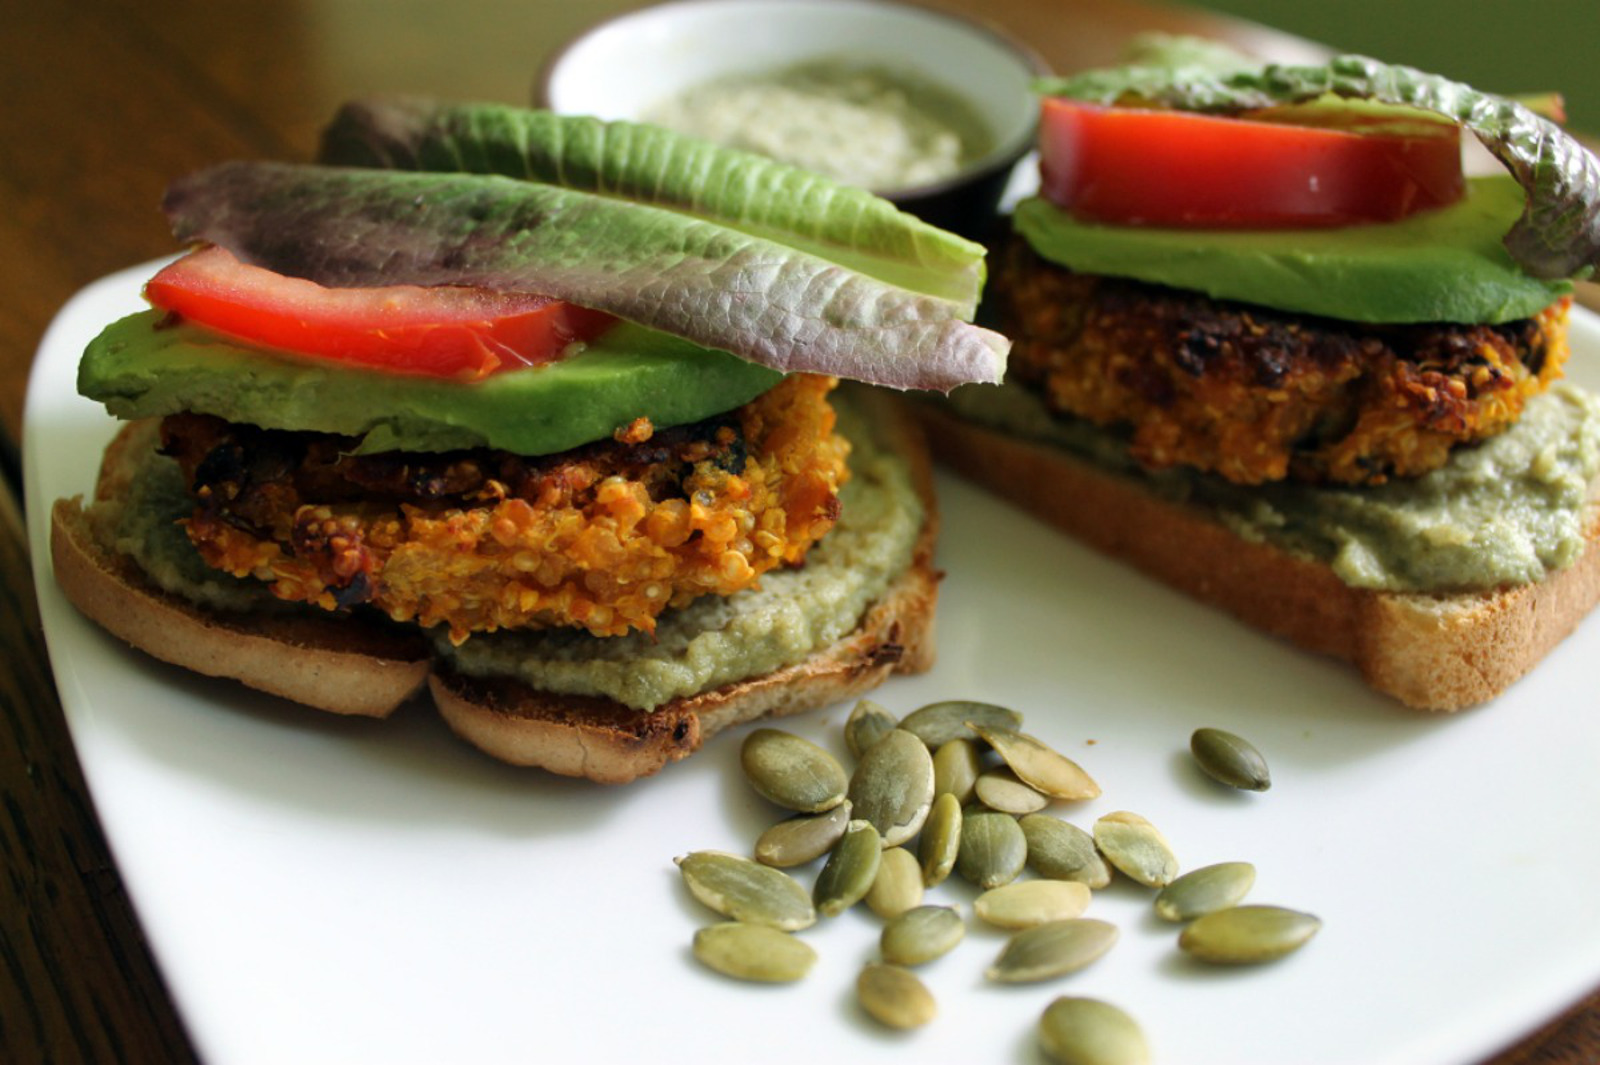 5 Ways Eating More Plant-Based Foods Benefits the Environment